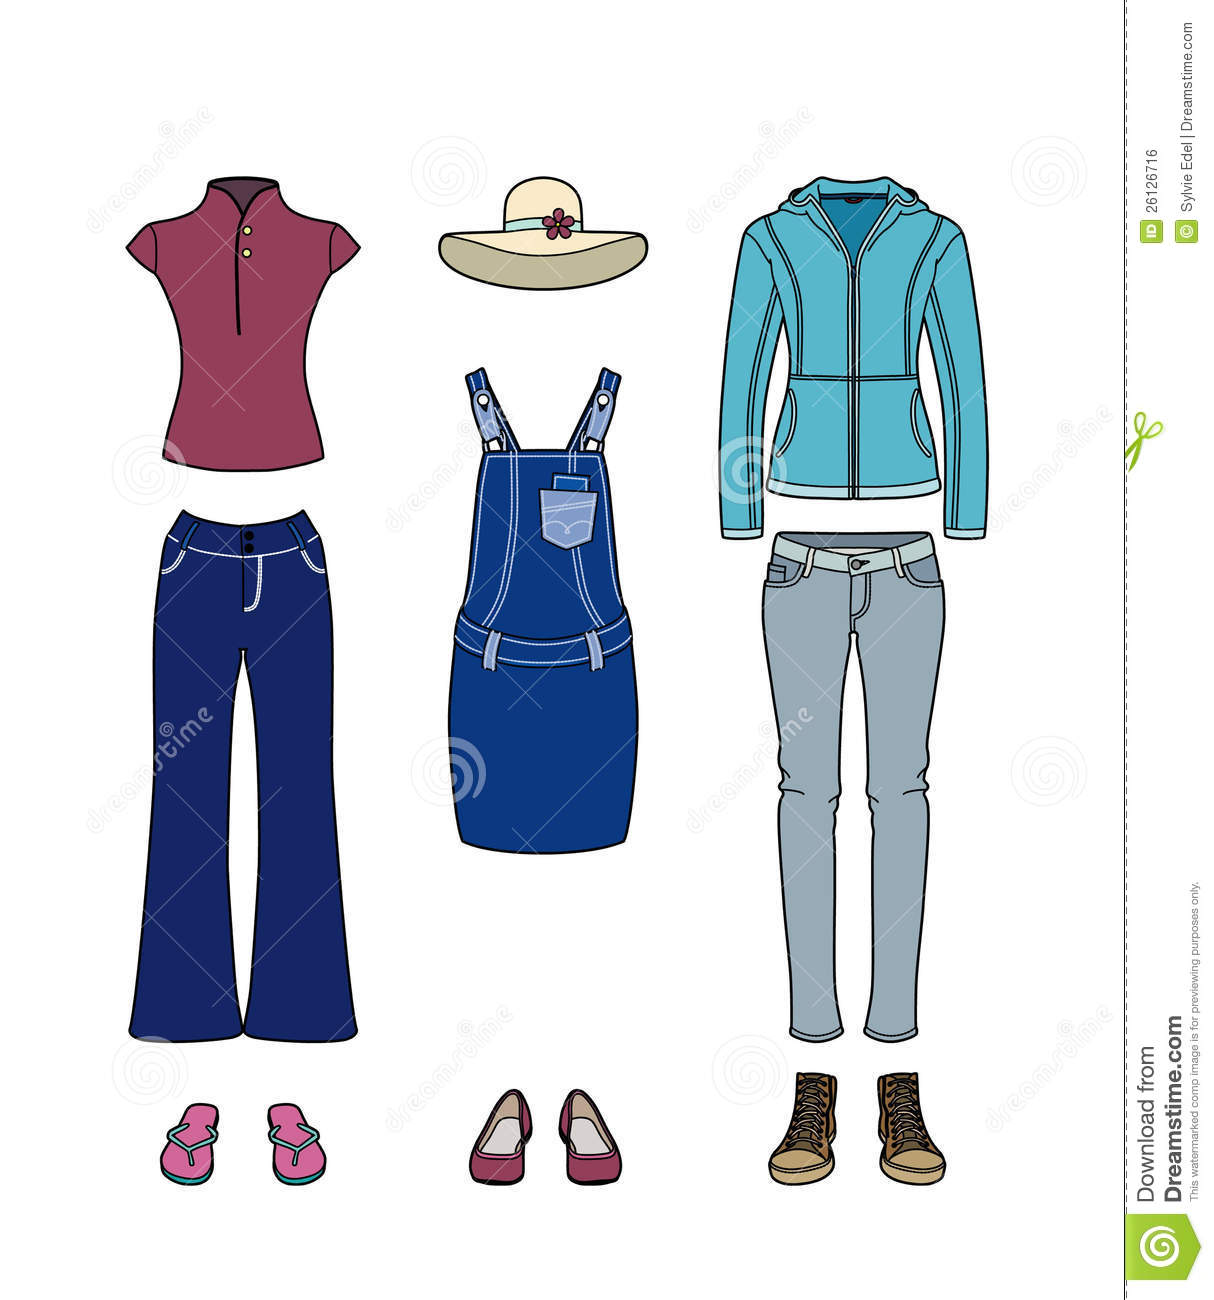 Casual Clothes For Women Royalty Free Stock Image - Image: 26126716